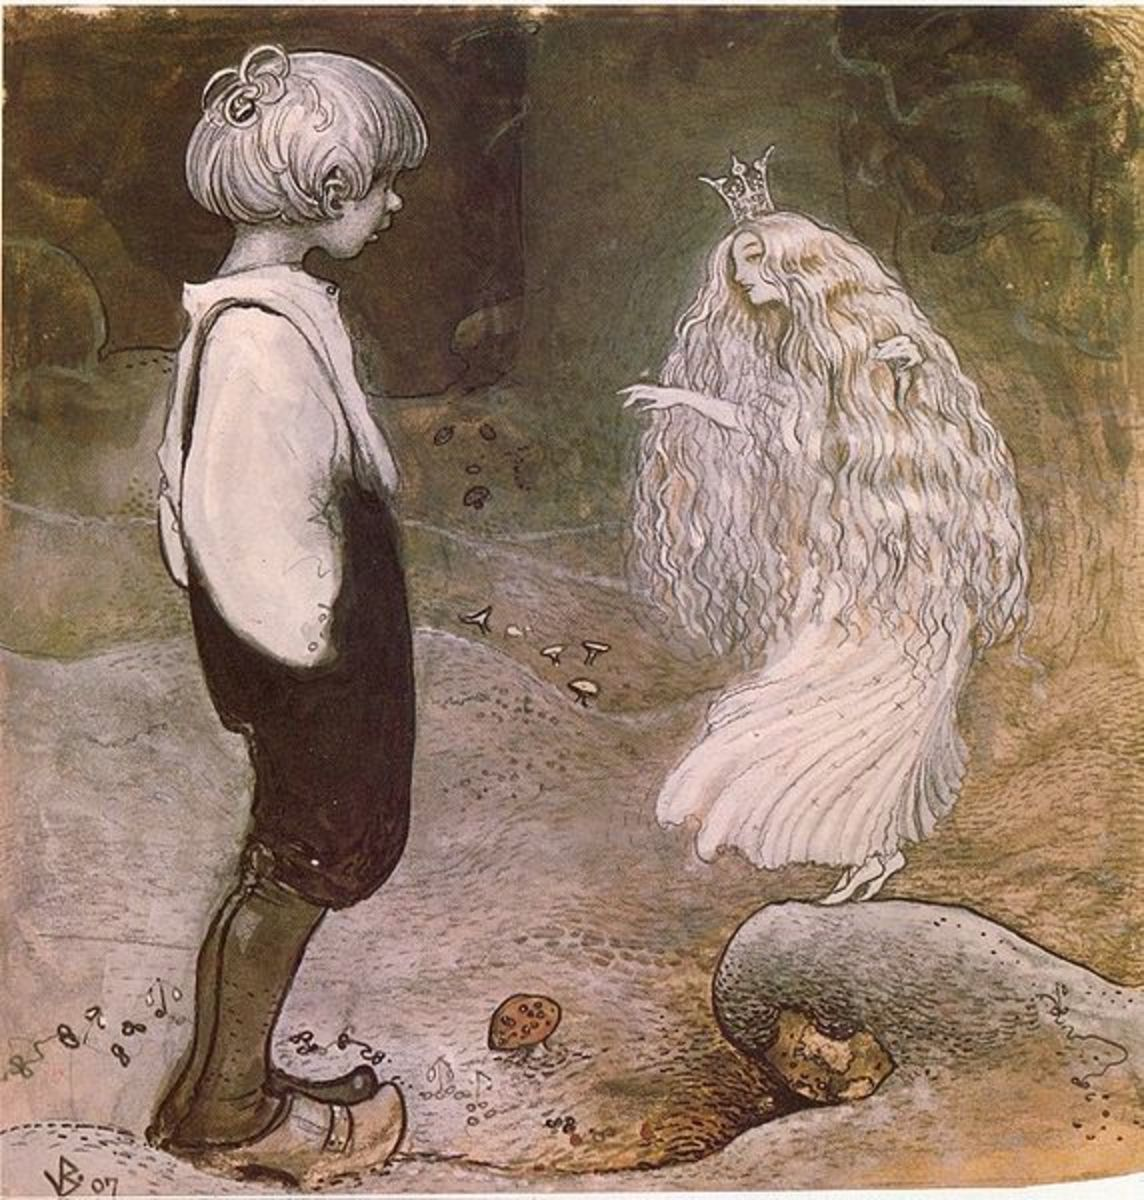 She Was Changed By Magic Into A Little Fairy by John Bauer from Wikipedia